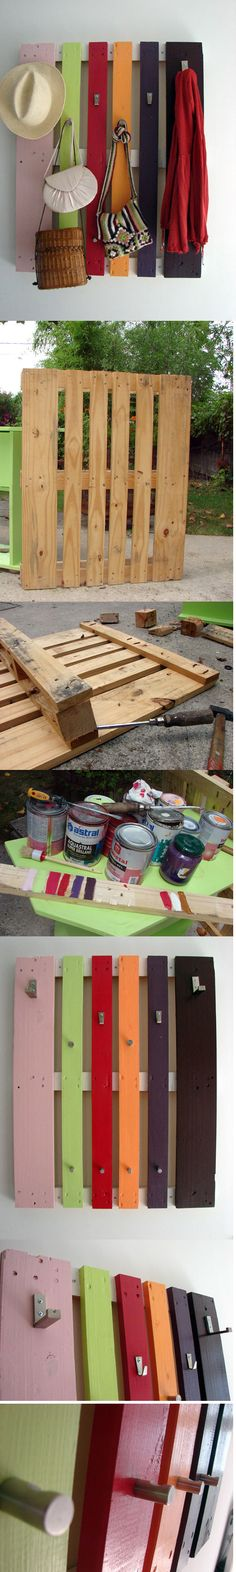 colorful diy coat rack from a pallet from www.shelterness.com #pallet #diy